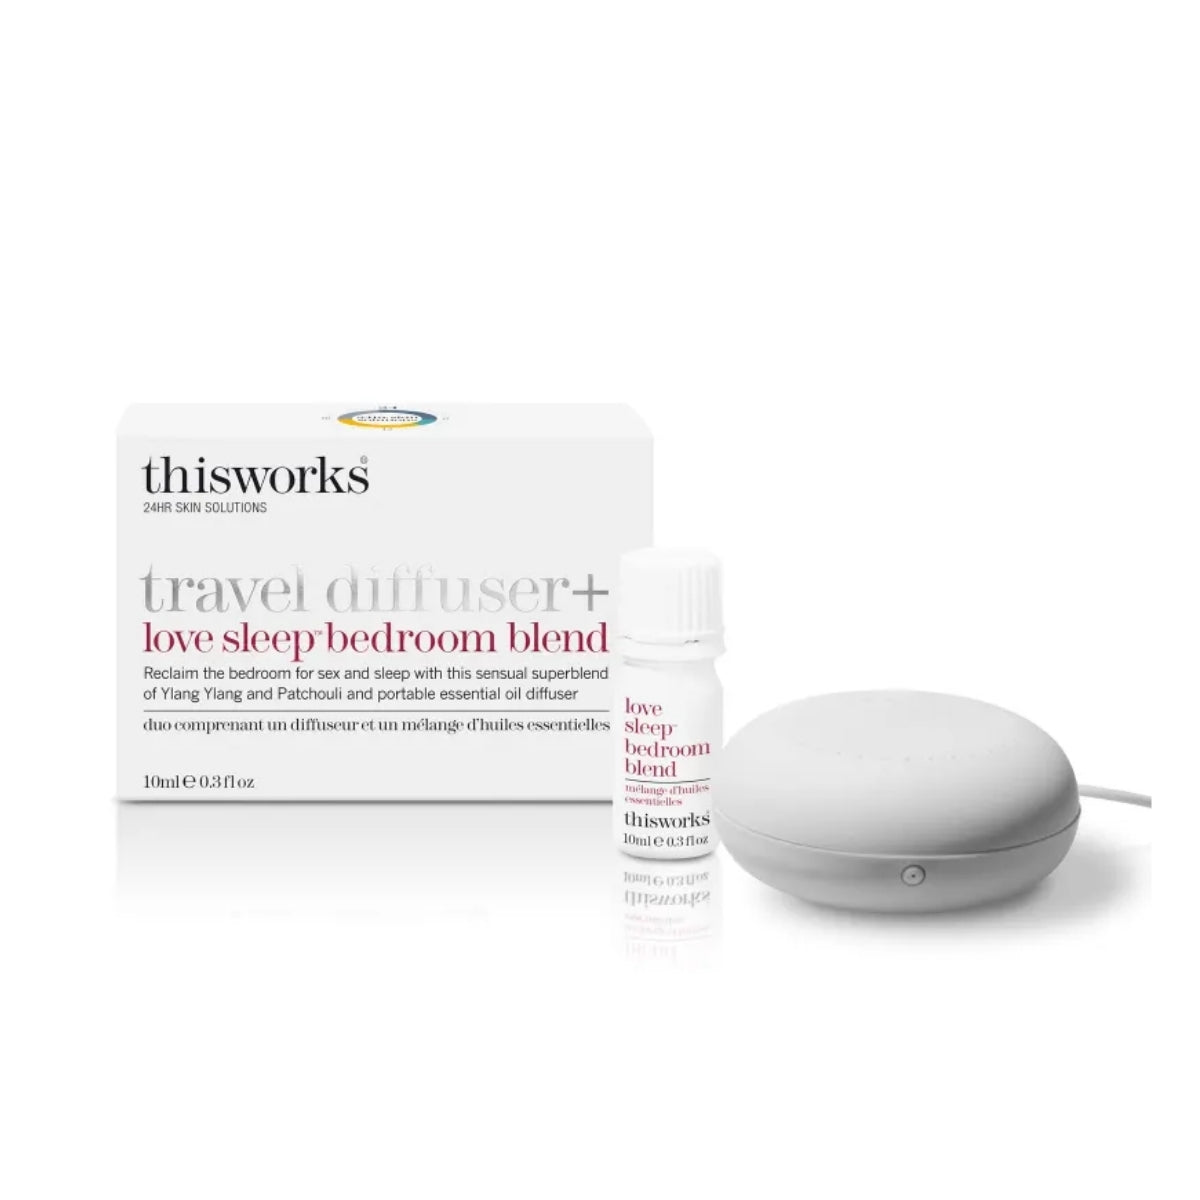 thisworks Travel Diffuser + Love Sleep Bedroom Blend 10ml